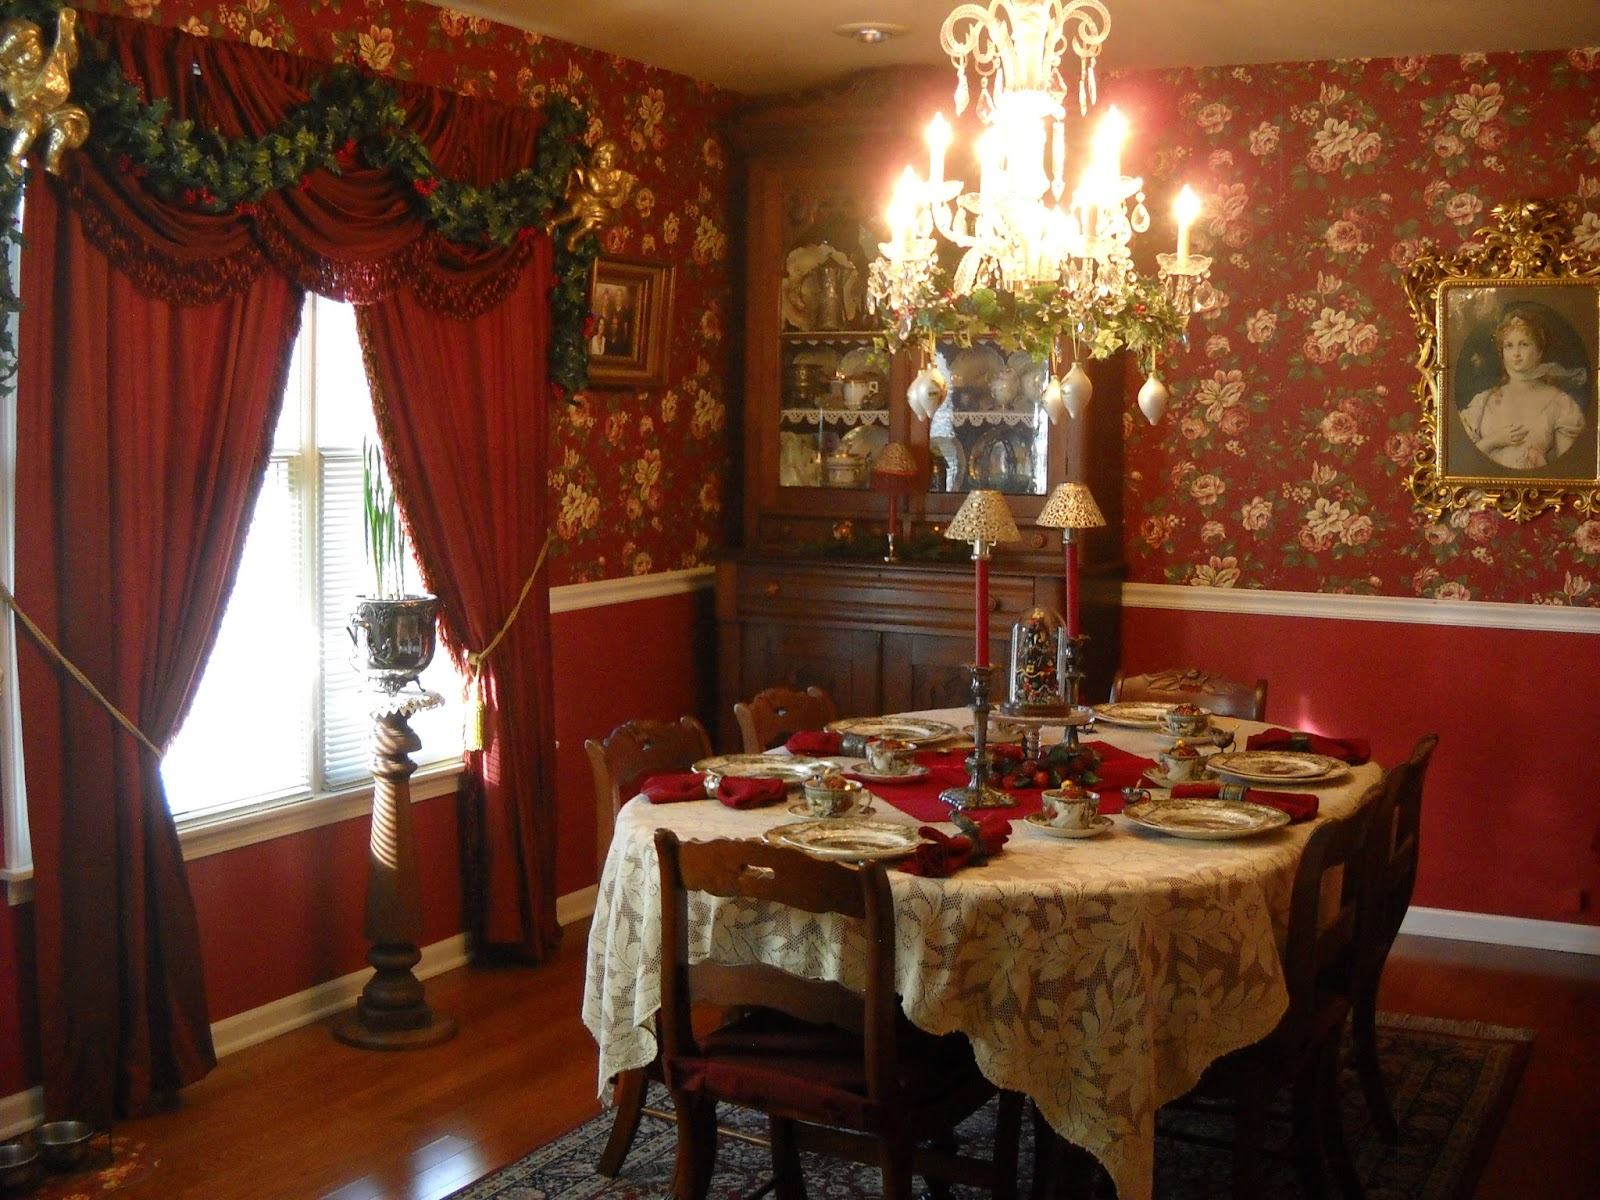 Dining Room Candle Chandelier Victorian Wanna Be Christmas In The Dining Room